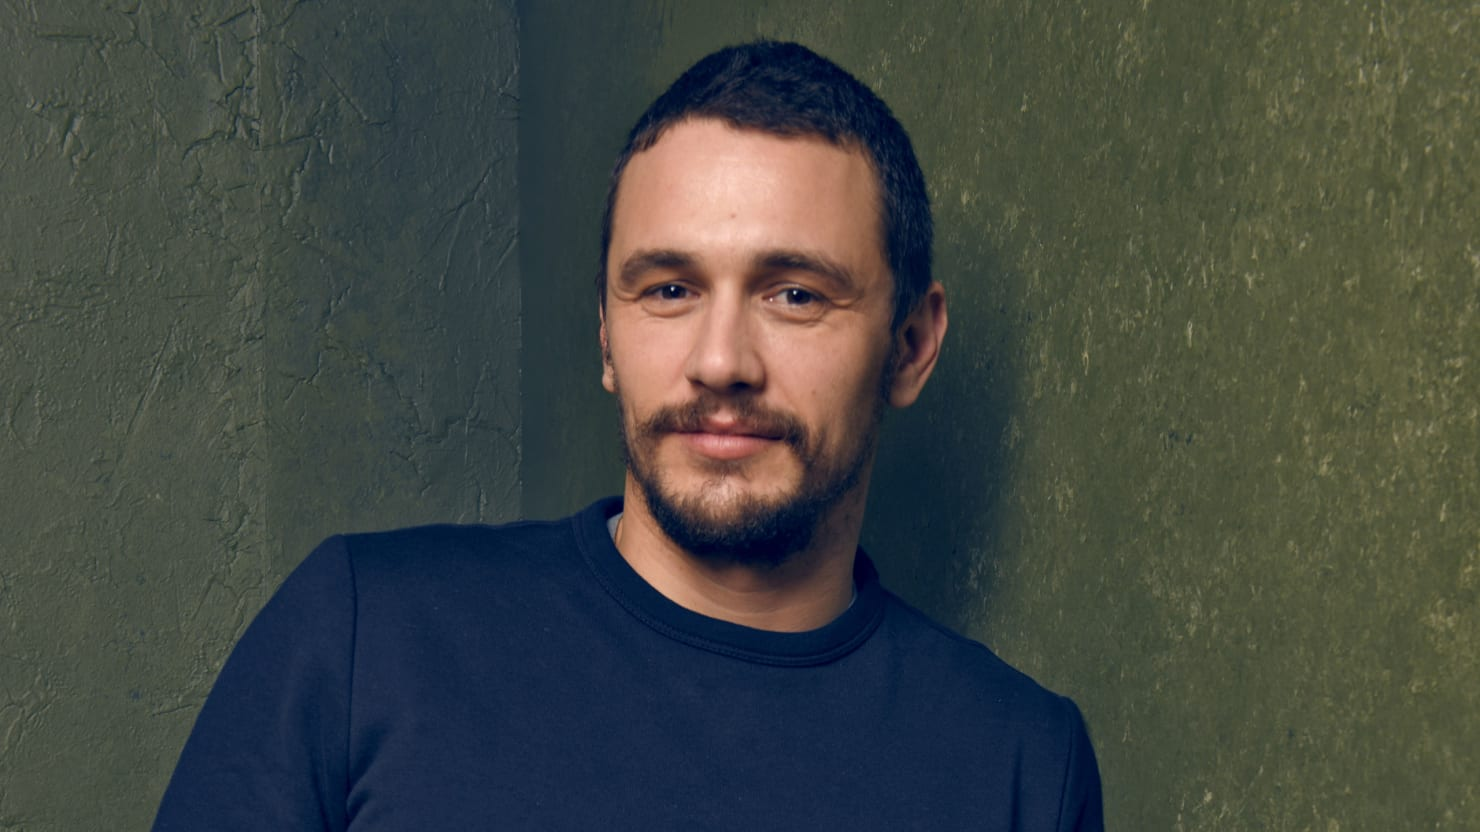 Gawker's Homophobic, Years-Long Crusade to Out James Franco